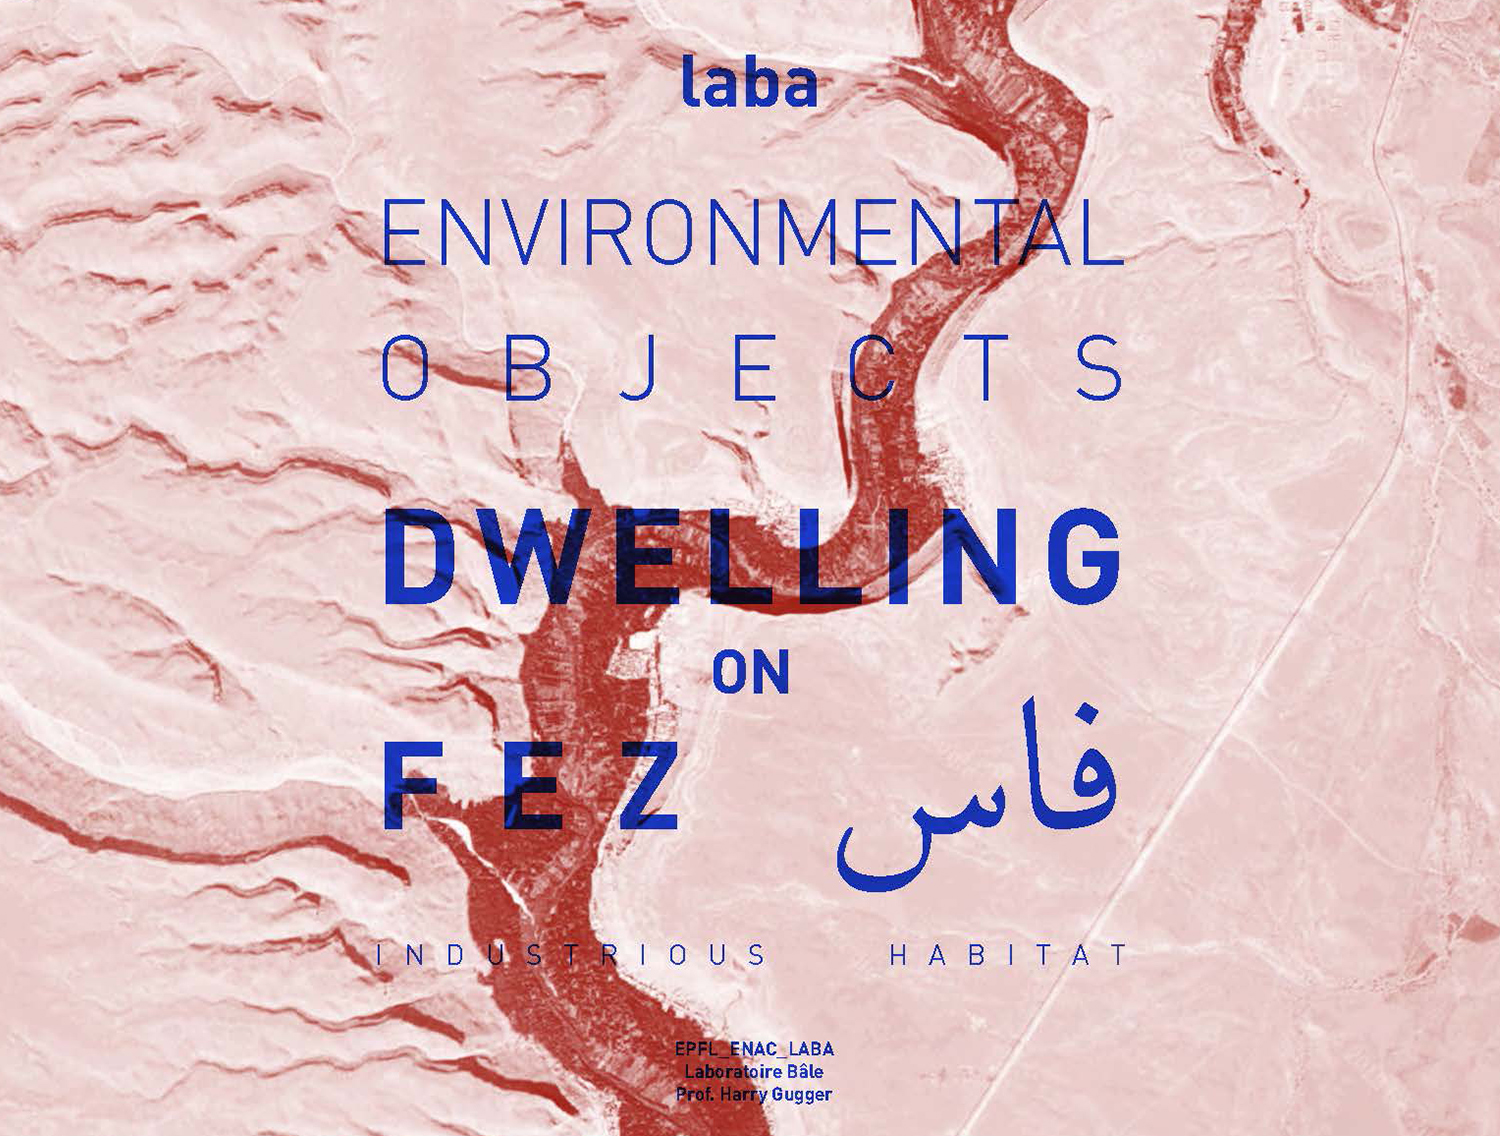 LABA - FEB. 11, 2019 | O+C is invited by the EPFL to give a lecture as part of its laba studio intervention on the City of Fez — the office spoke of its refurbishment of four caravanserais in the city